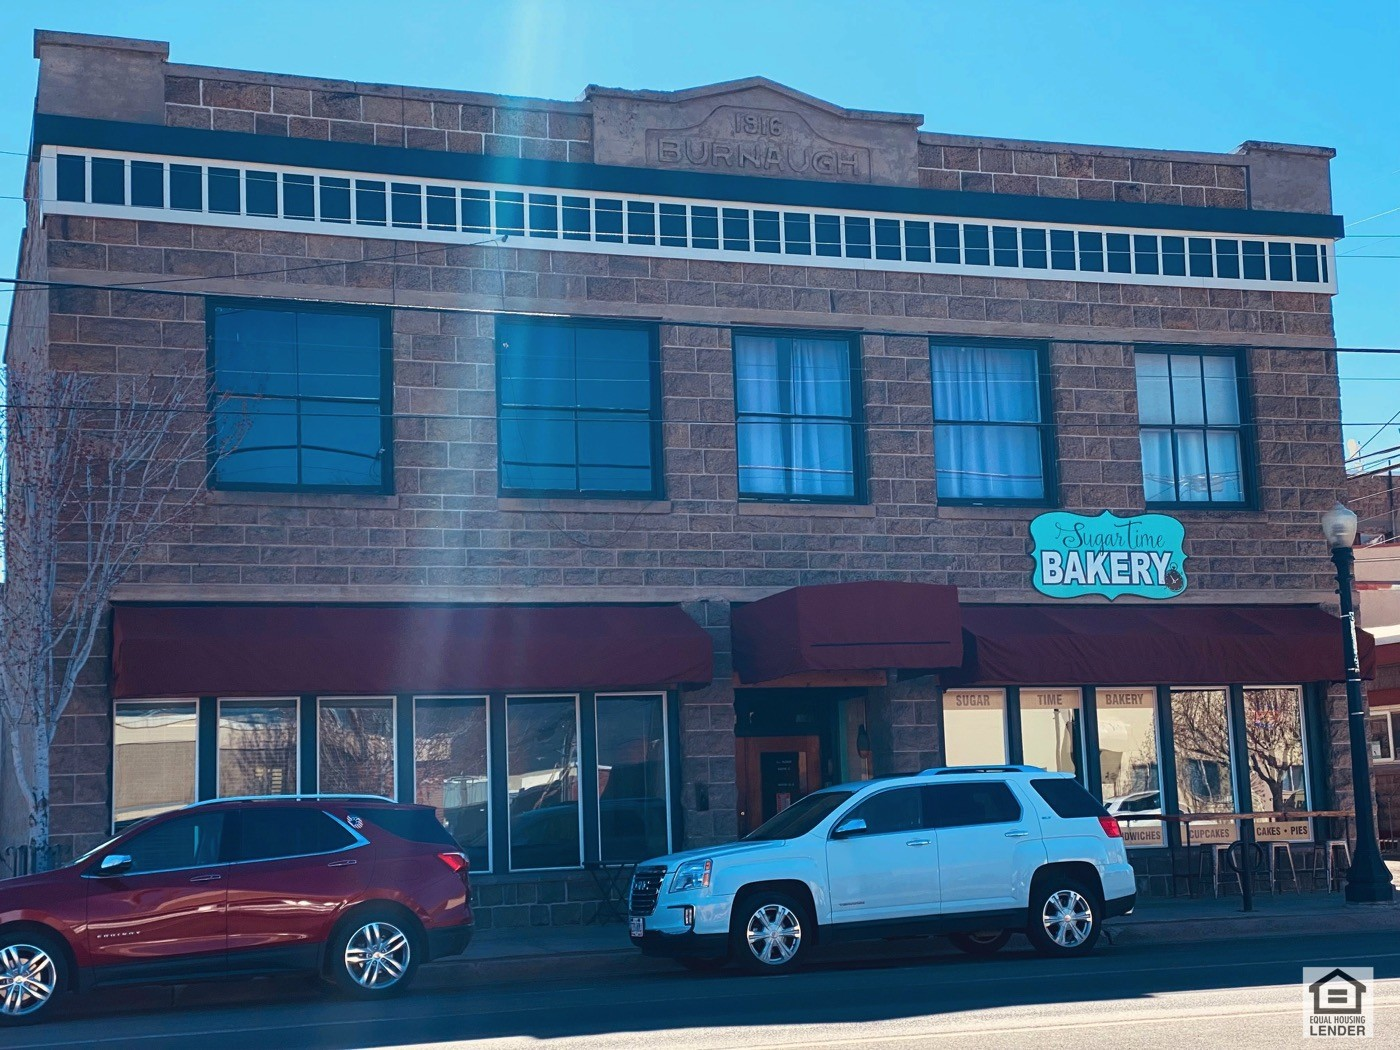 There is a basement commerial unit that is also leased.